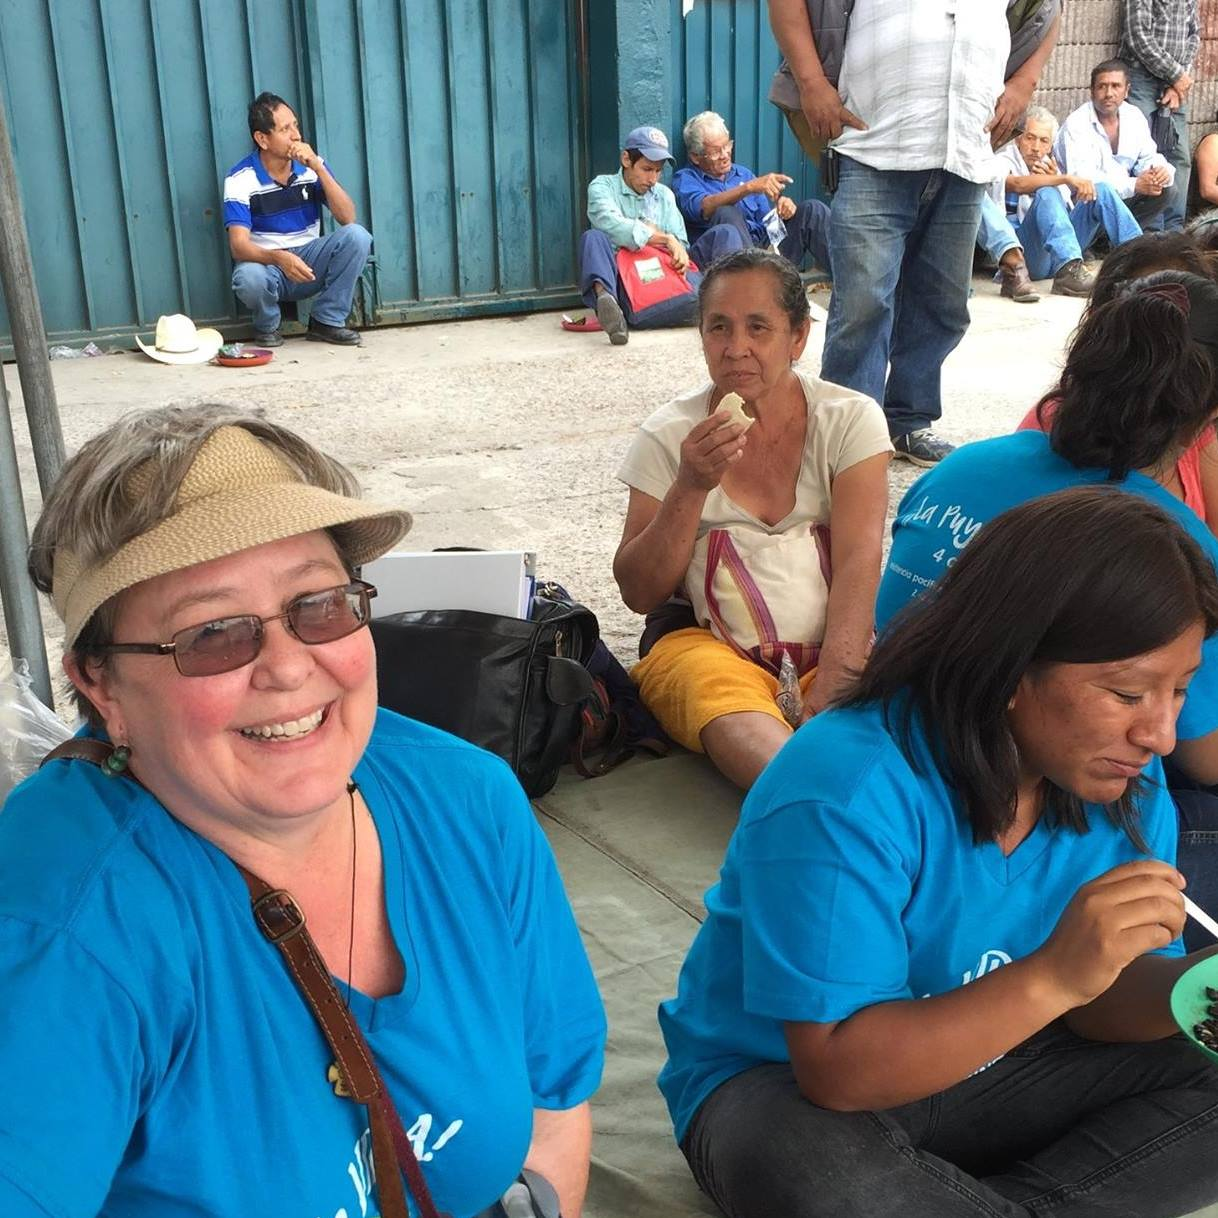 Accompanying the La Puya Resistance in 2016, as they set up a new protest site in front of the office of the Ministry of Energy and Mining.